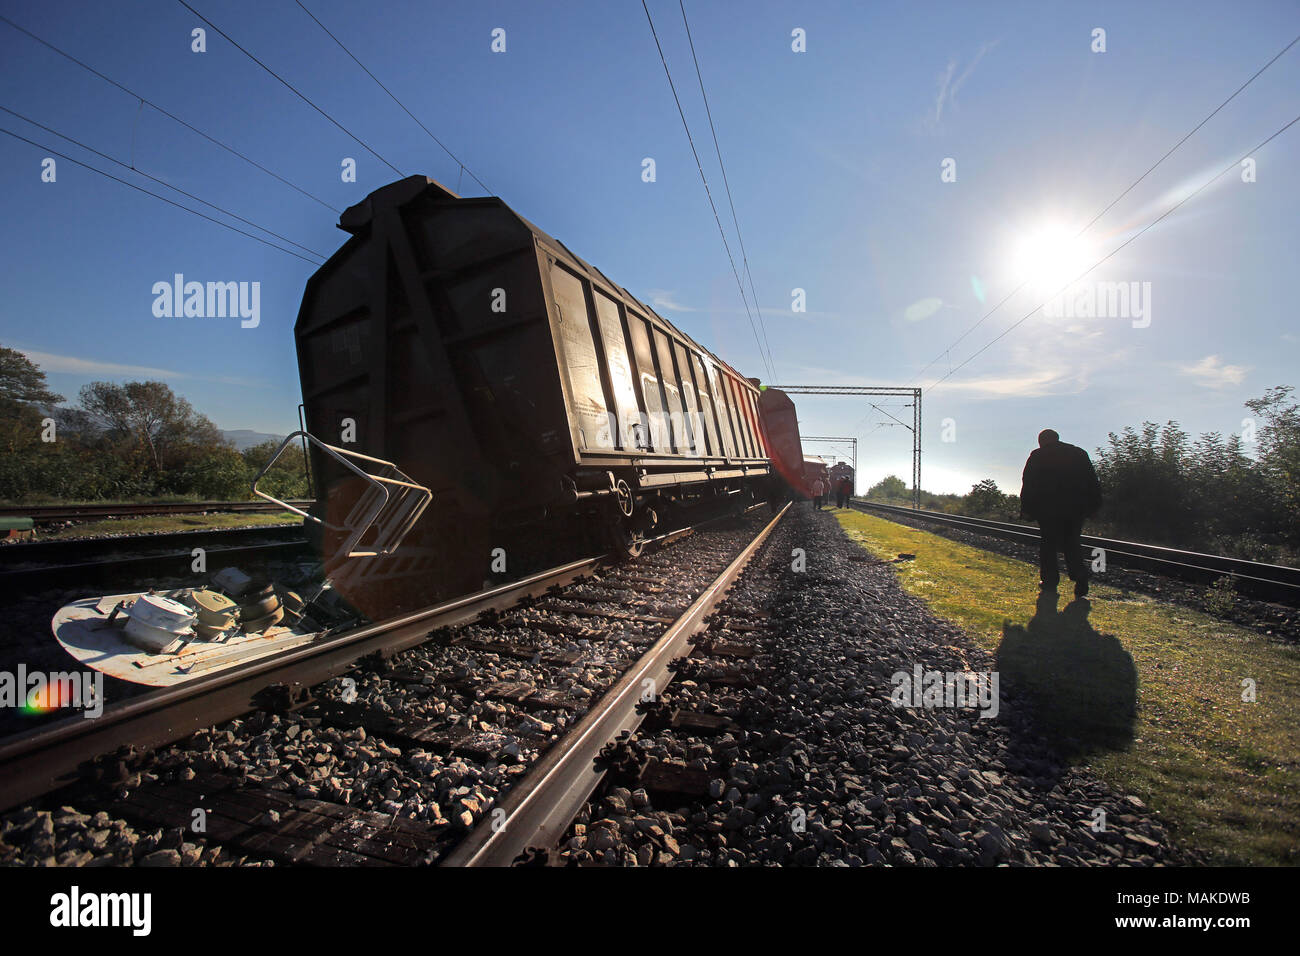 Rail Accident Stock Photos & Rail Accident Stock Images - Alamy